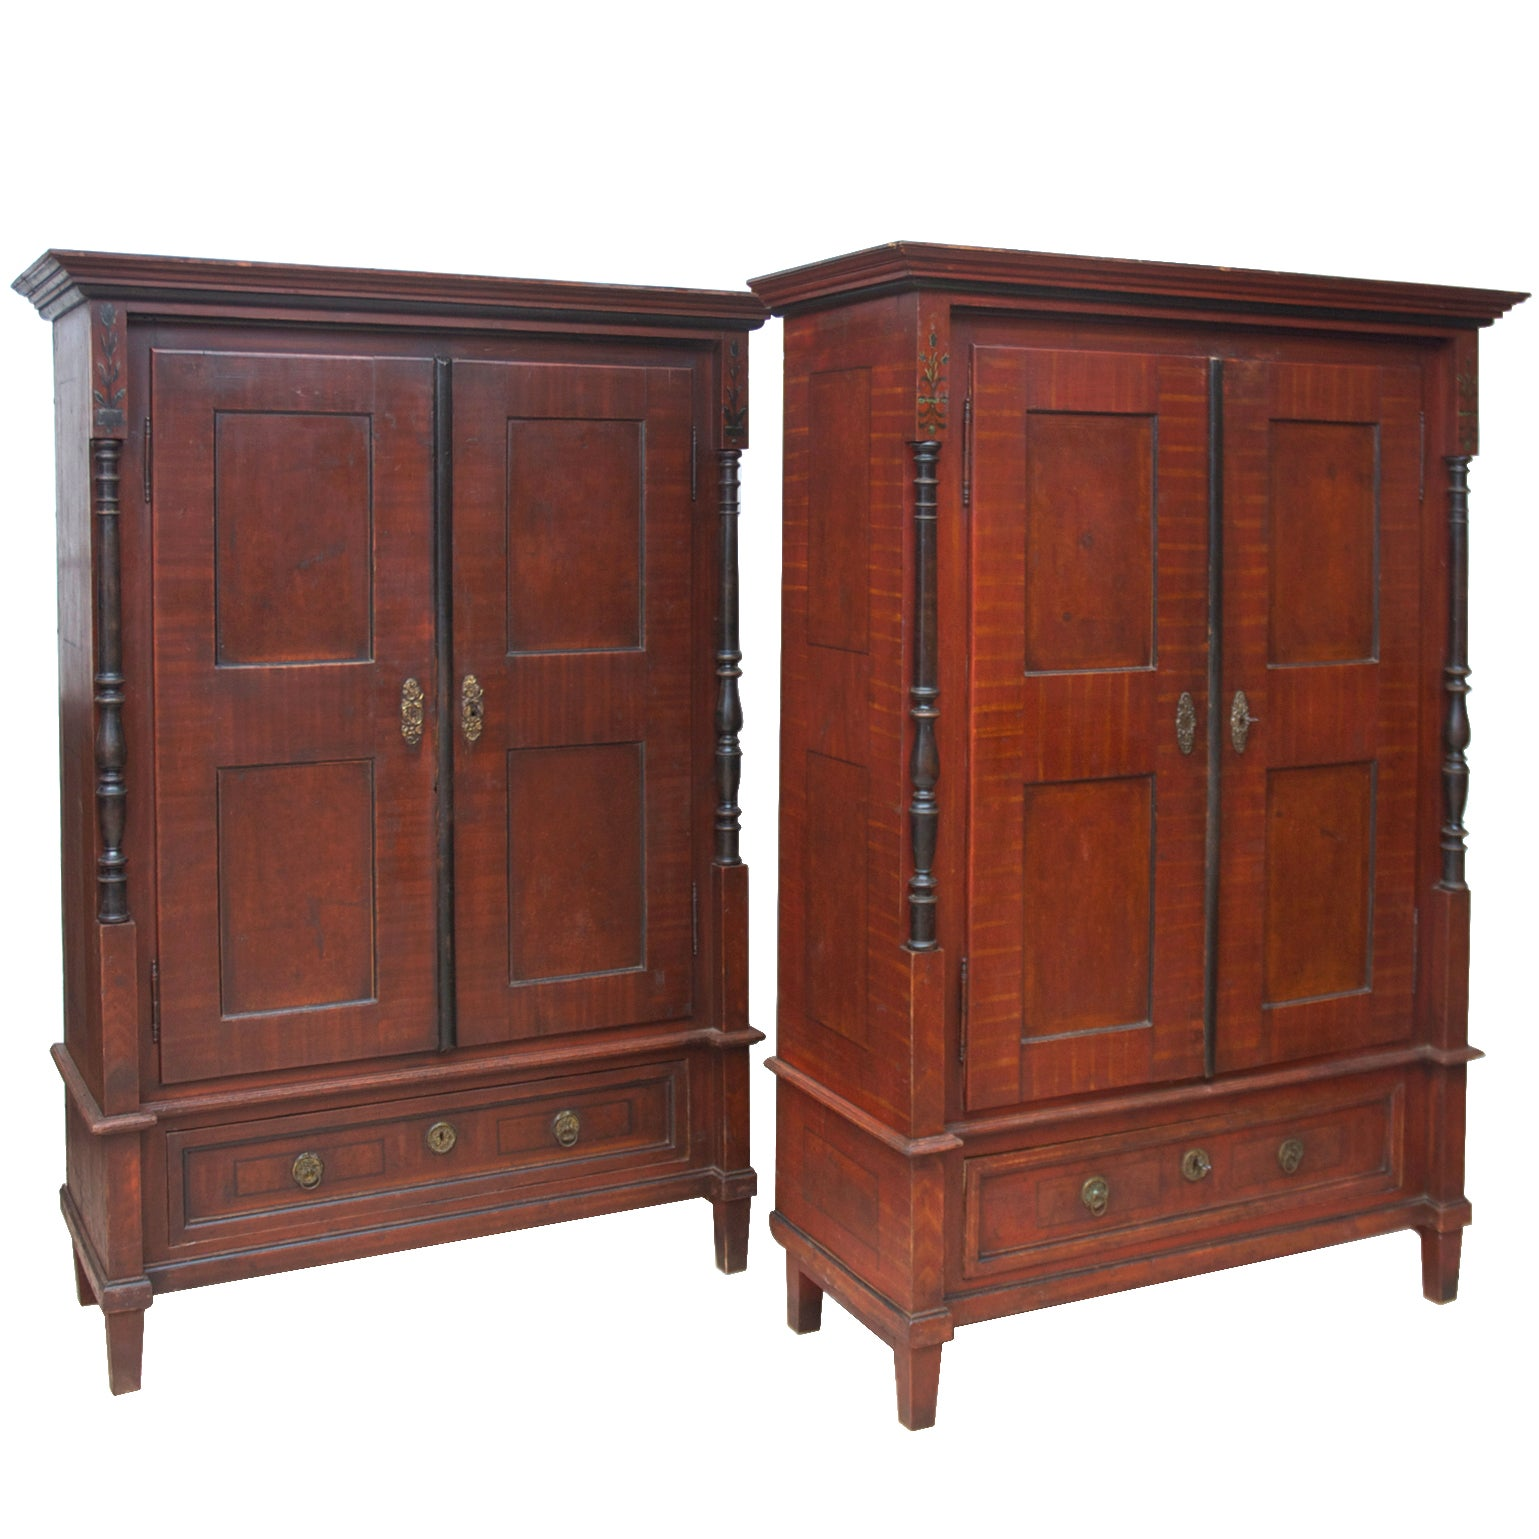 Armoire Bois Antique Pair Of 19th Century Austrian Armoires With Painted Faux Bois Finish